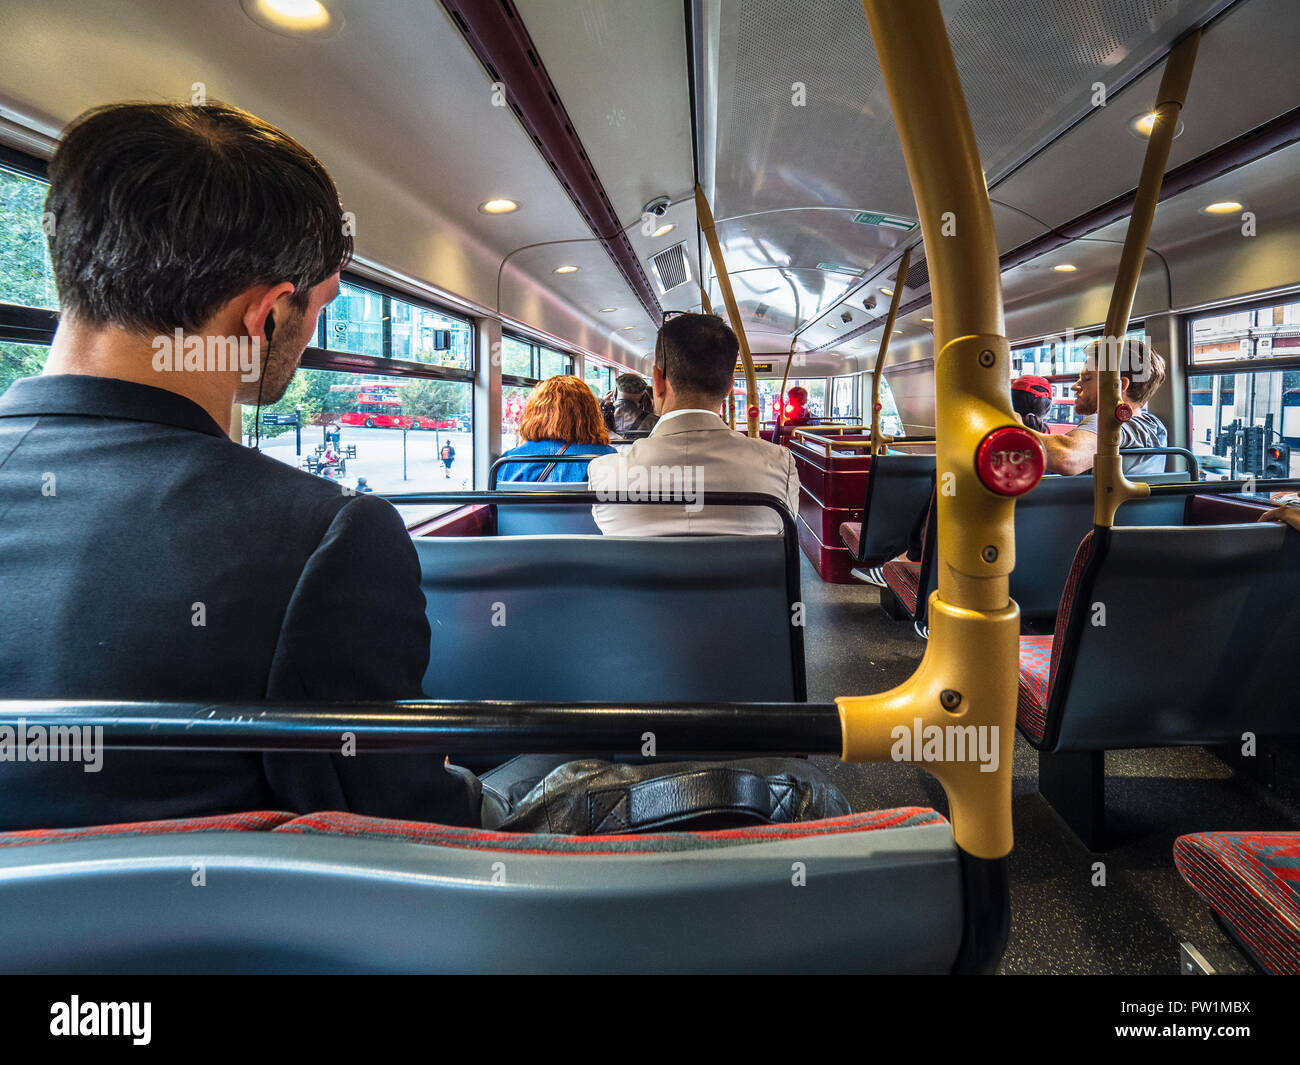 London Routemaster Bus Top Deck - passengers on the top deck of a new model London Routemaster bus - Stock Image